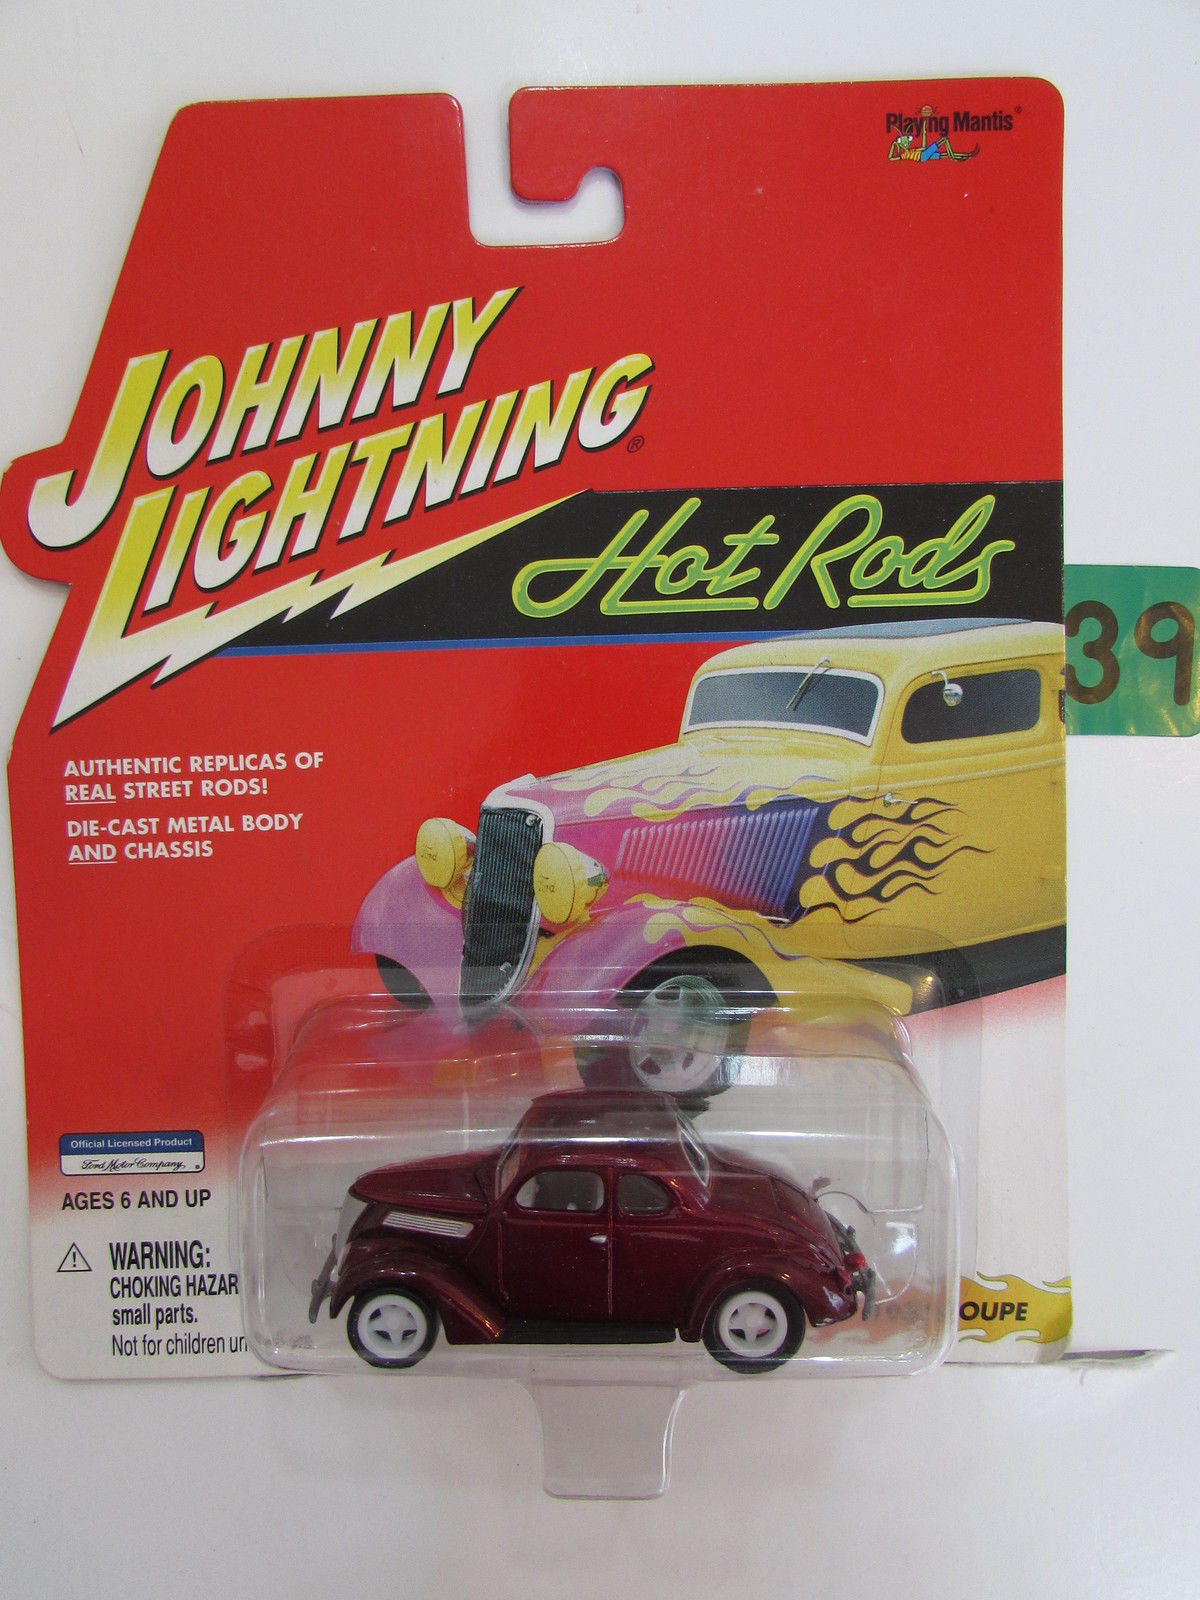 JOHNNY LIGHTNING 2001 HOT RODS 1937 COUPE - WHITE LIGHTNING